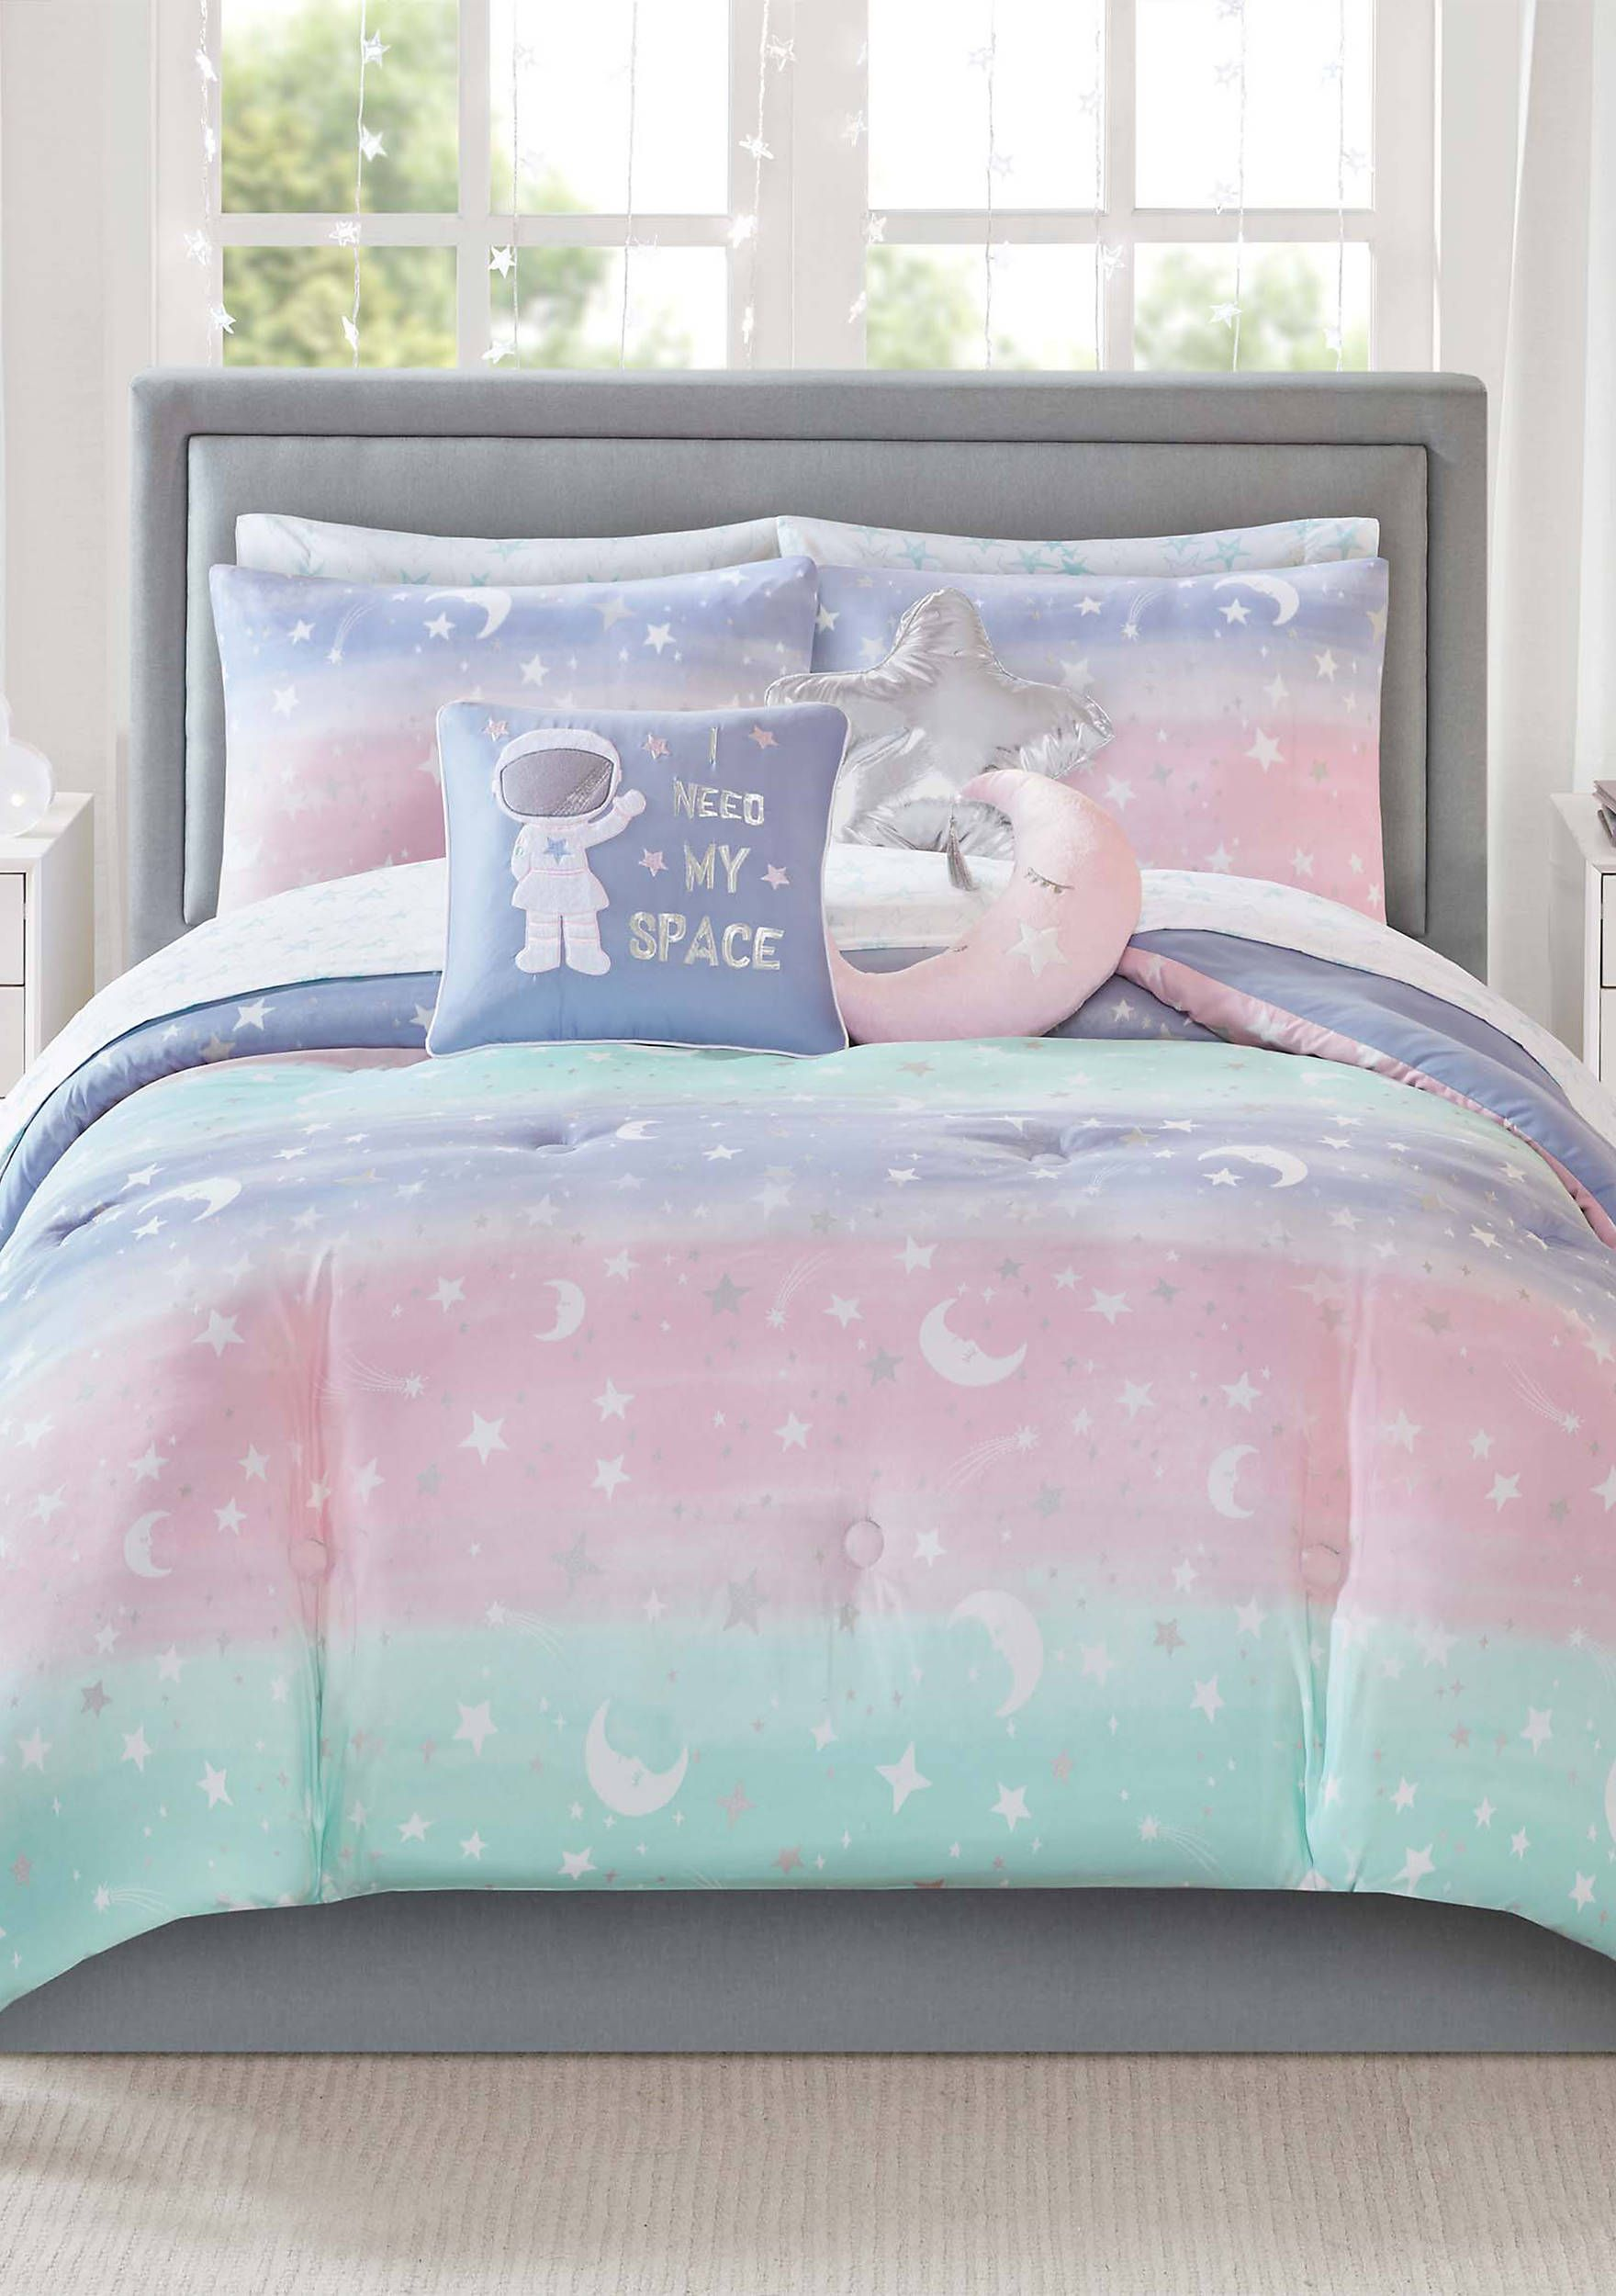 BlessLiving Galaxy Unicorn Duvet Cover 3 Piece Cosmic Rainbow Bedding Unicorn Doona Cover Size King